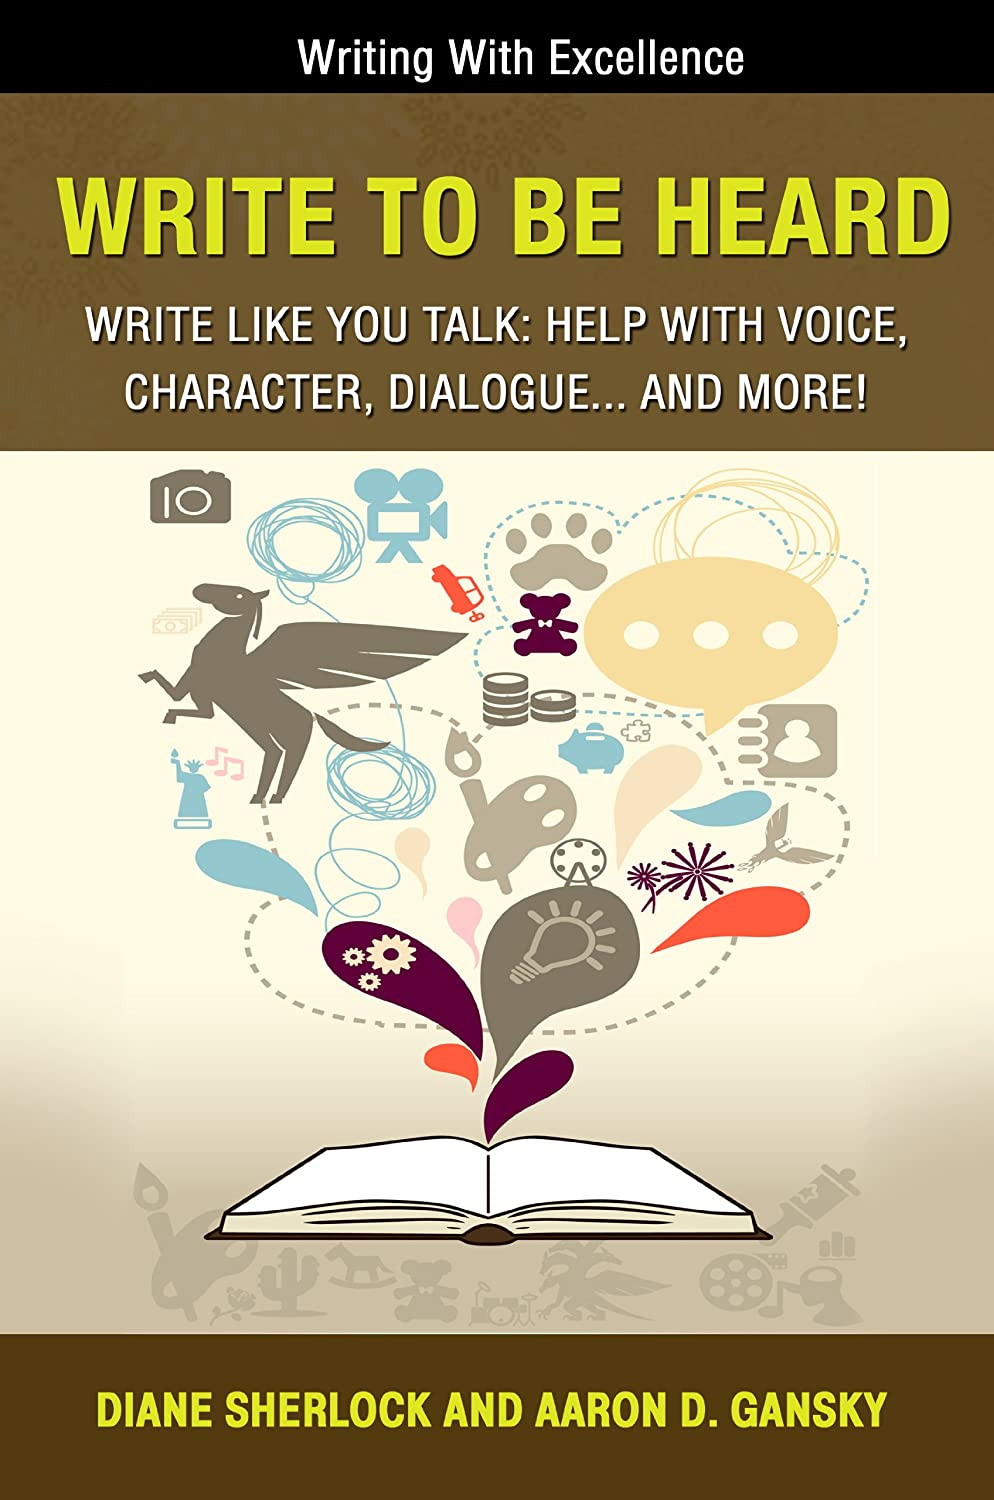 Write To Be Heard: Write Like You Talk: Help With Voice, Character, Dialogue... and more! (Education, Writing, Research & Publishing Fiction) [Kindle Edition] Aaron D. Gansky (Author), Diane Sherlock (Author)